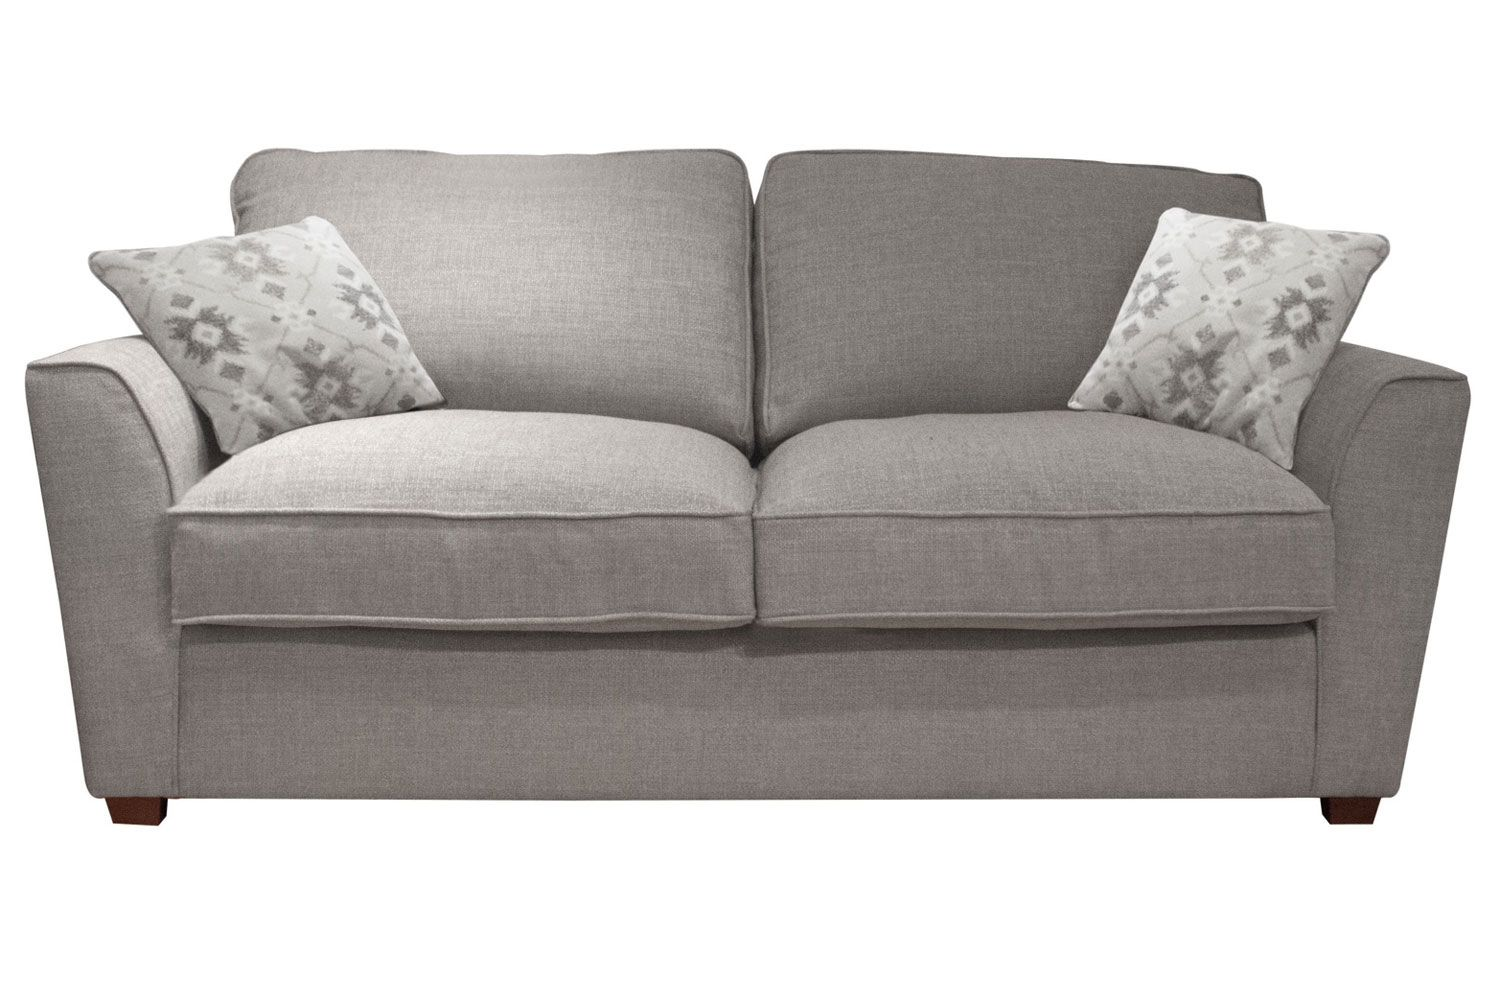 Sofa Repair Dubai Qusais Chesterfield Deals Fantasia Corner Fabric Sofas Shop At Harvey